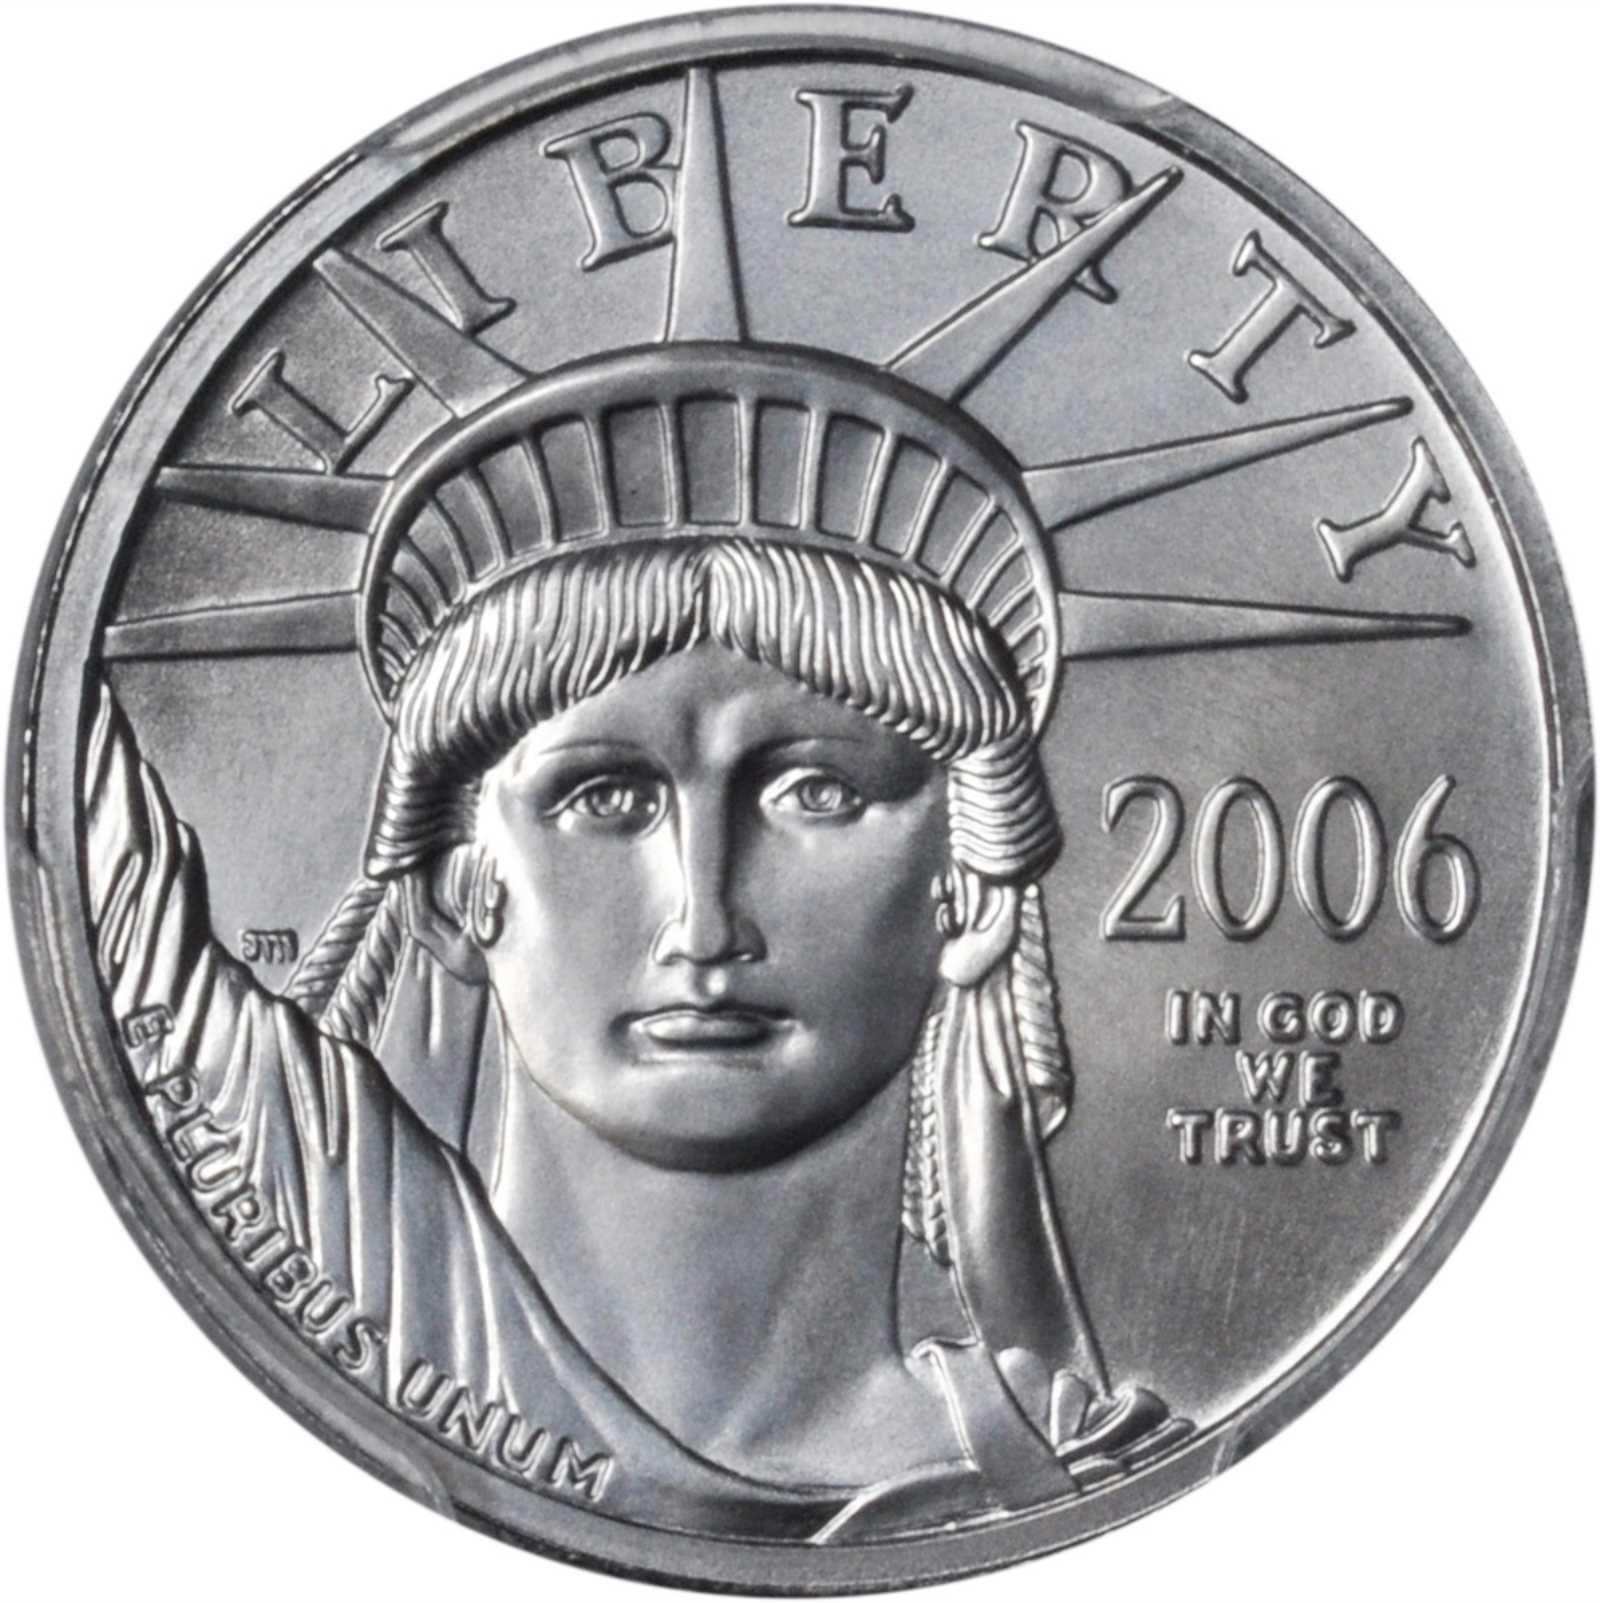 peace prior bu years platinum coinshow central coin shop gold silver dollar goldsilver buy numismatics